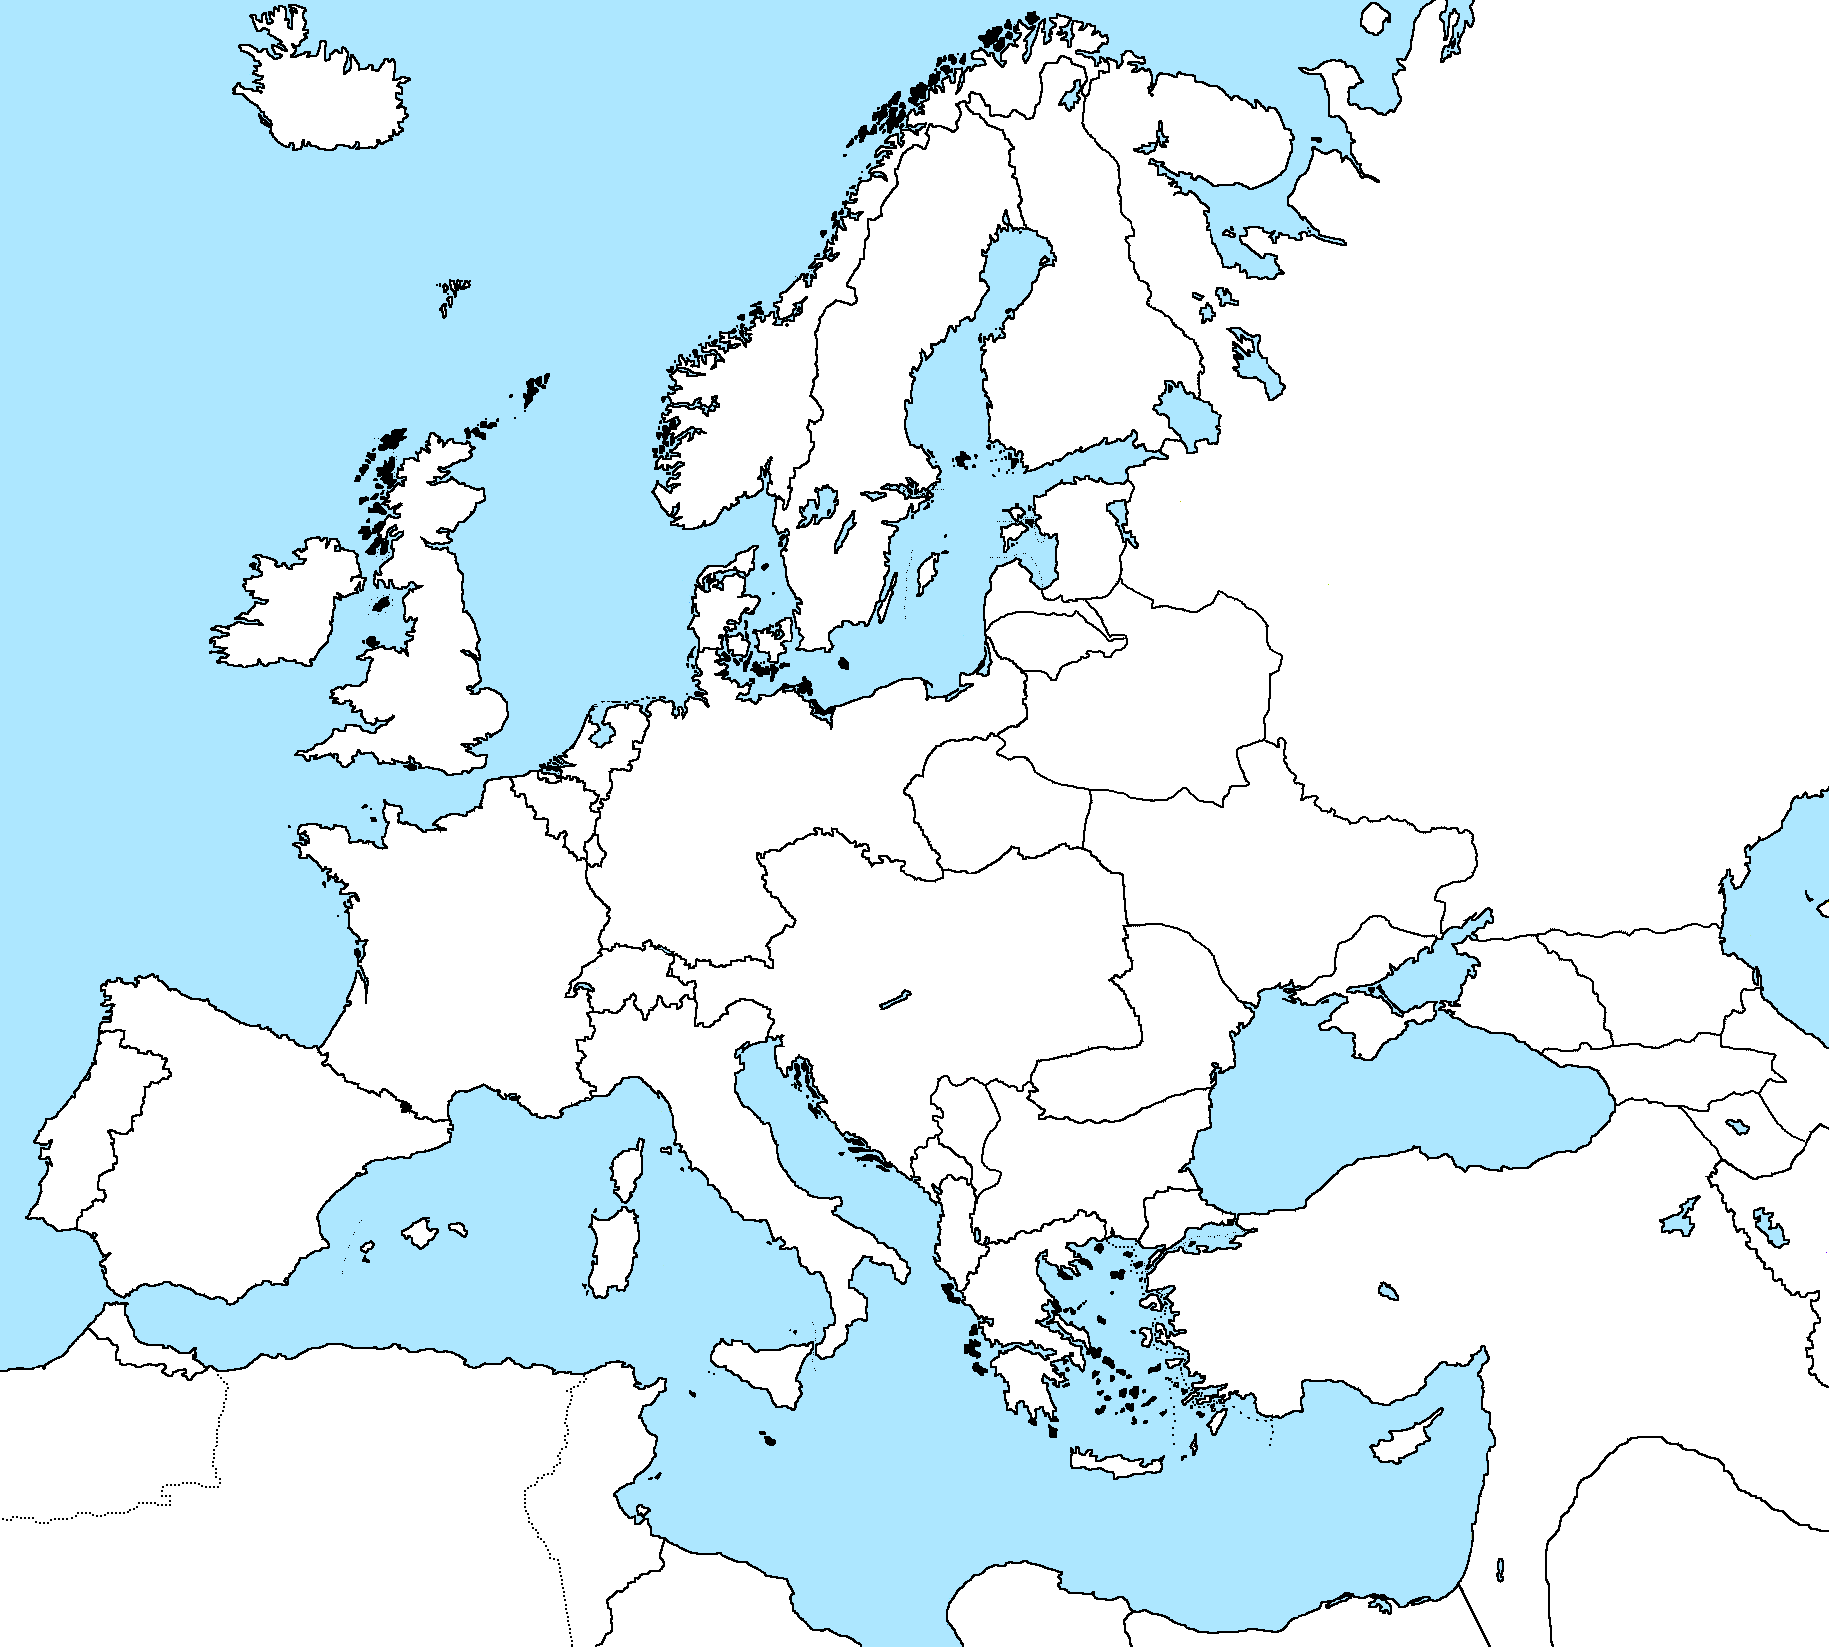 blank map of europe 1918 by xgeograd